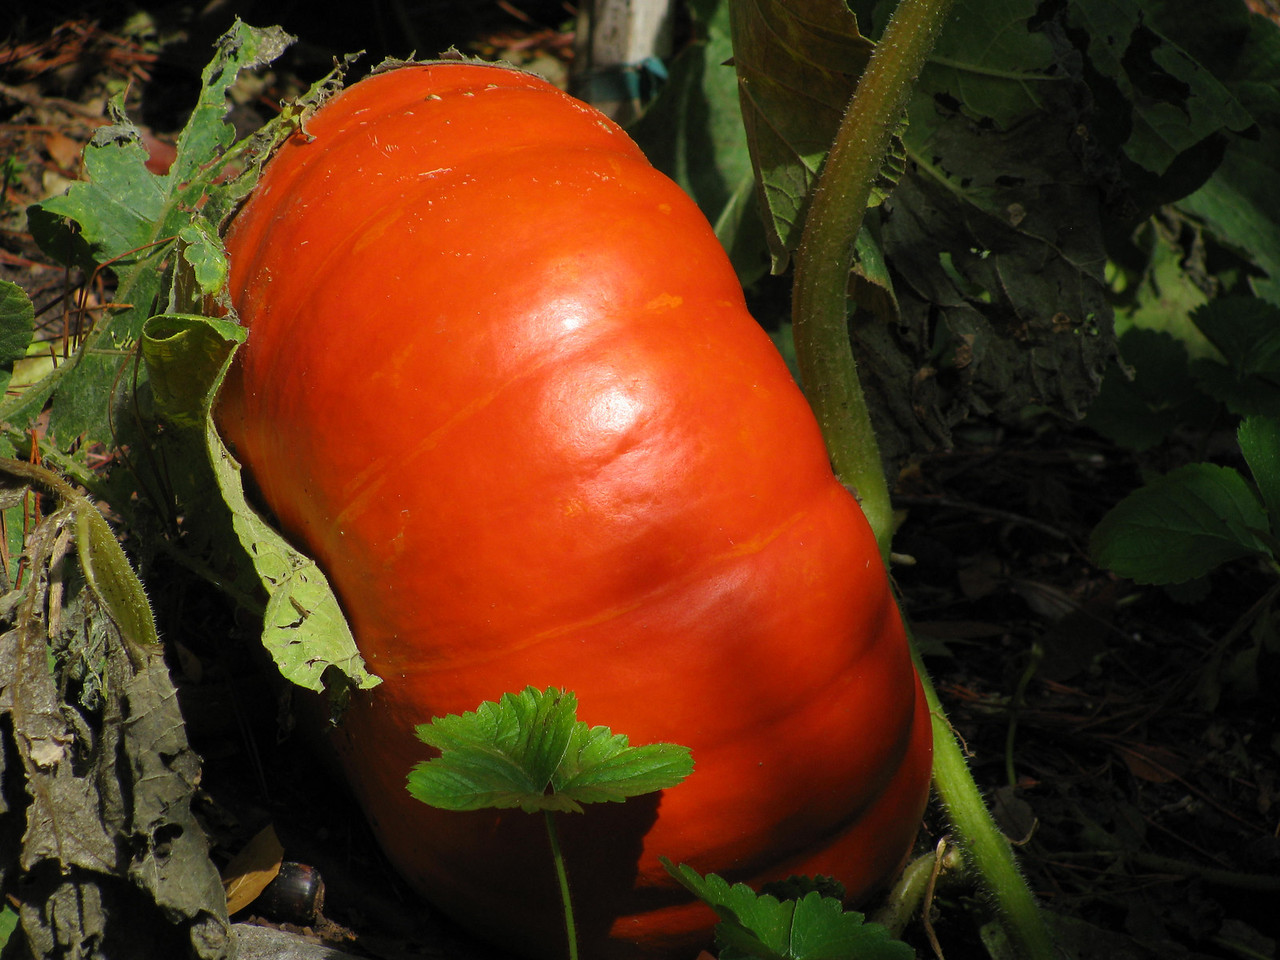 A beautiful ornamental and edible pumpkin.